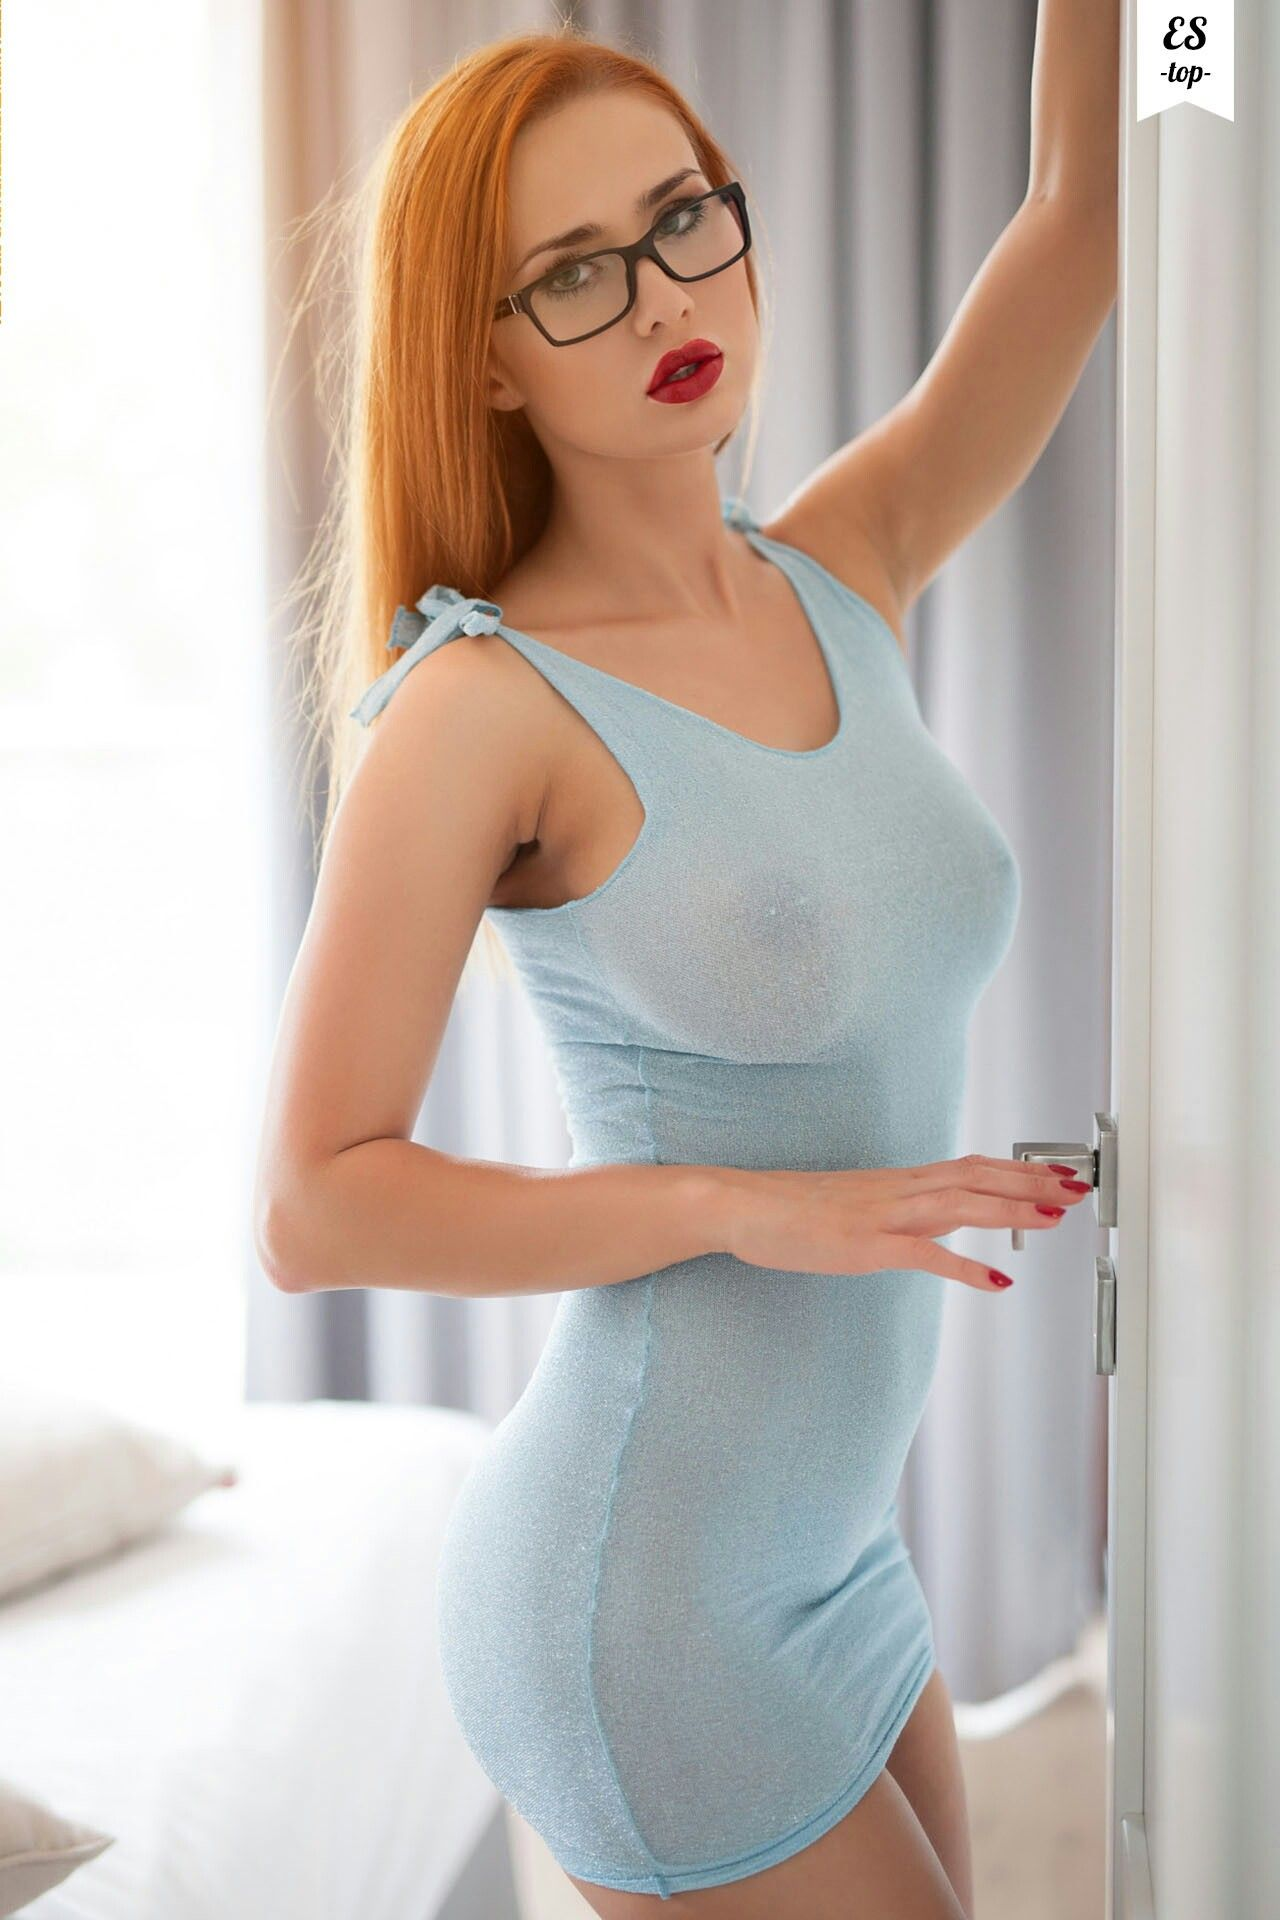 Seriously hot sexy red heads